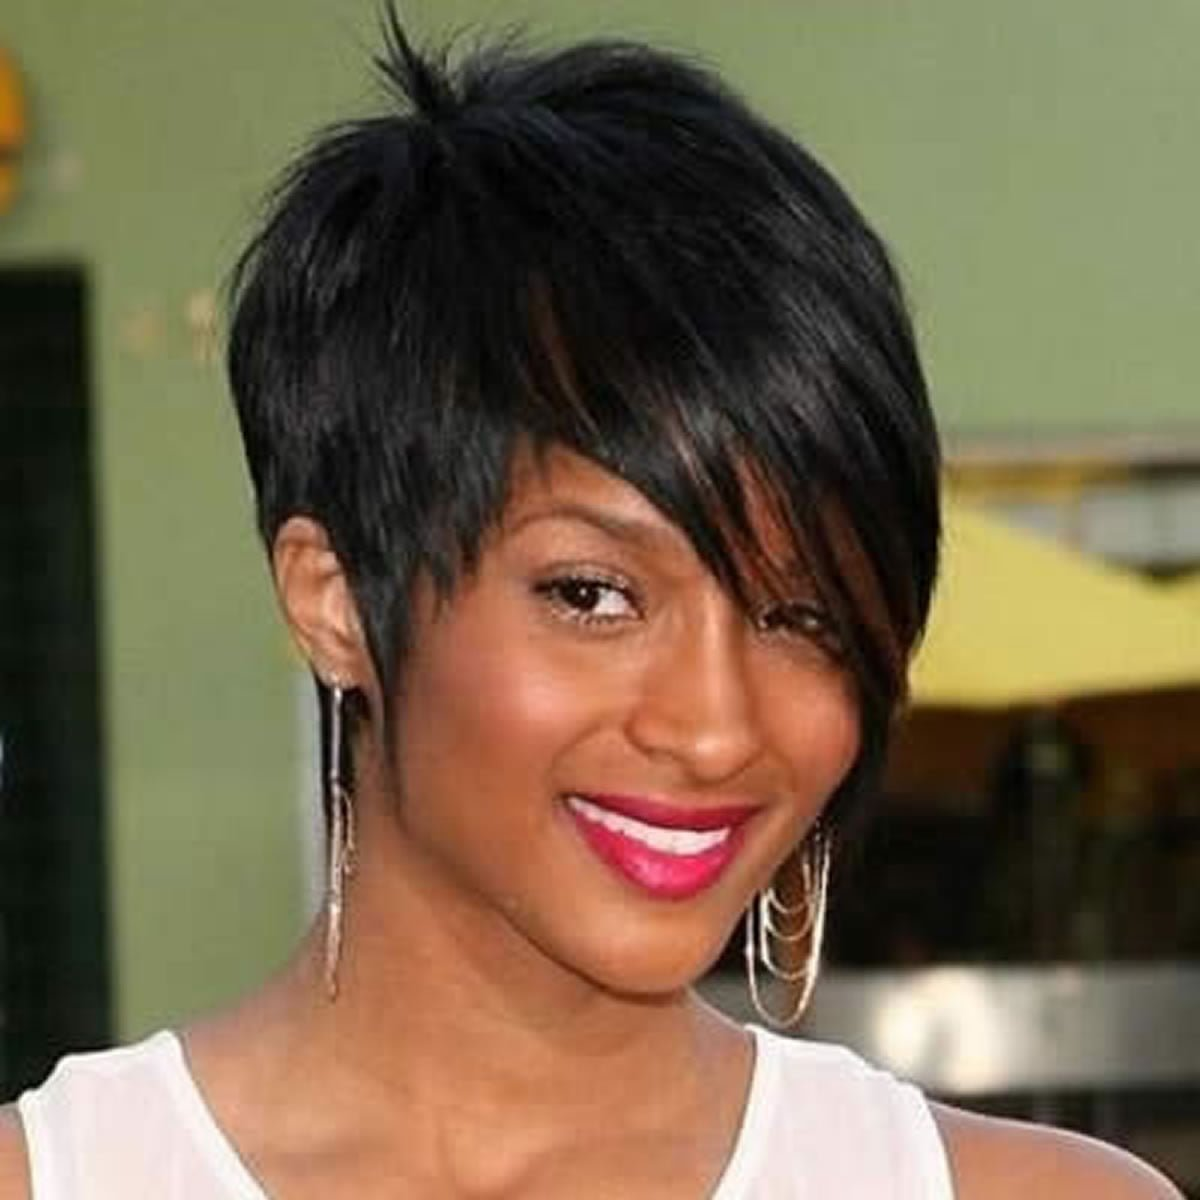 Very Short Pixie Haircut 2019 For Black Women HAIRSTYLES